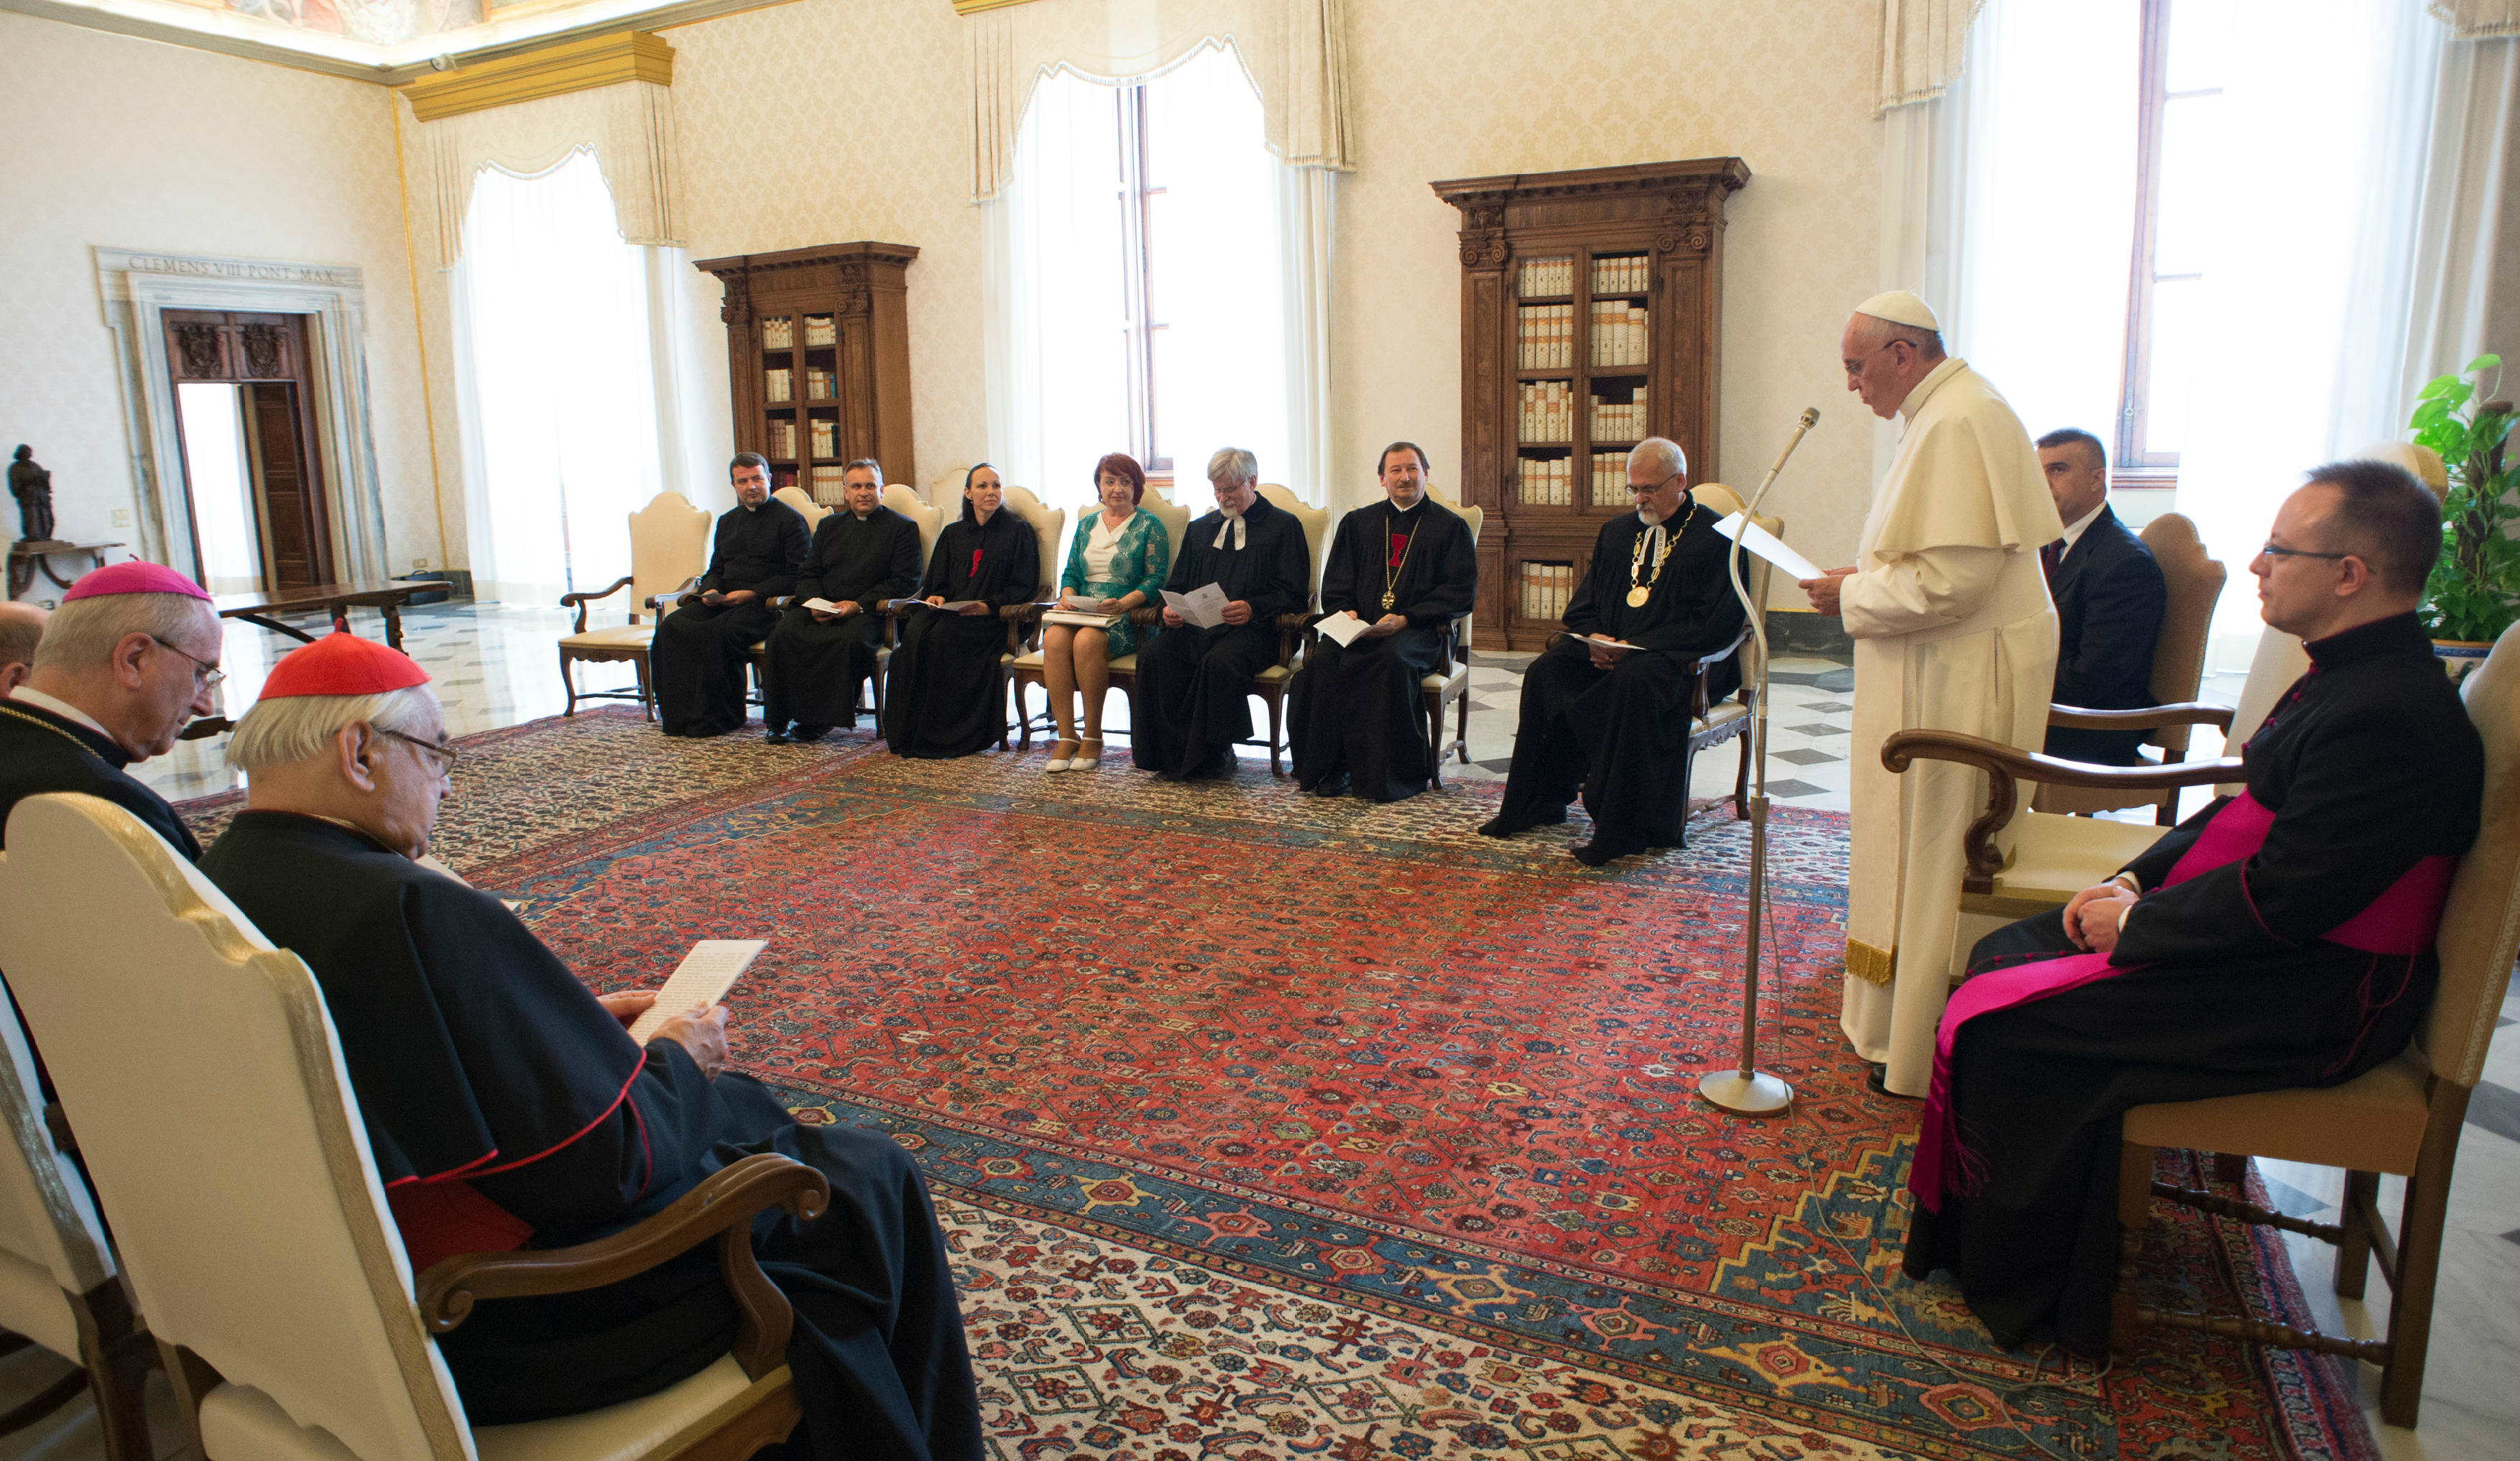 Pope meets with representatives of the Czechoslovak Hussite Church and the Evangelical Church of Czech Brethren